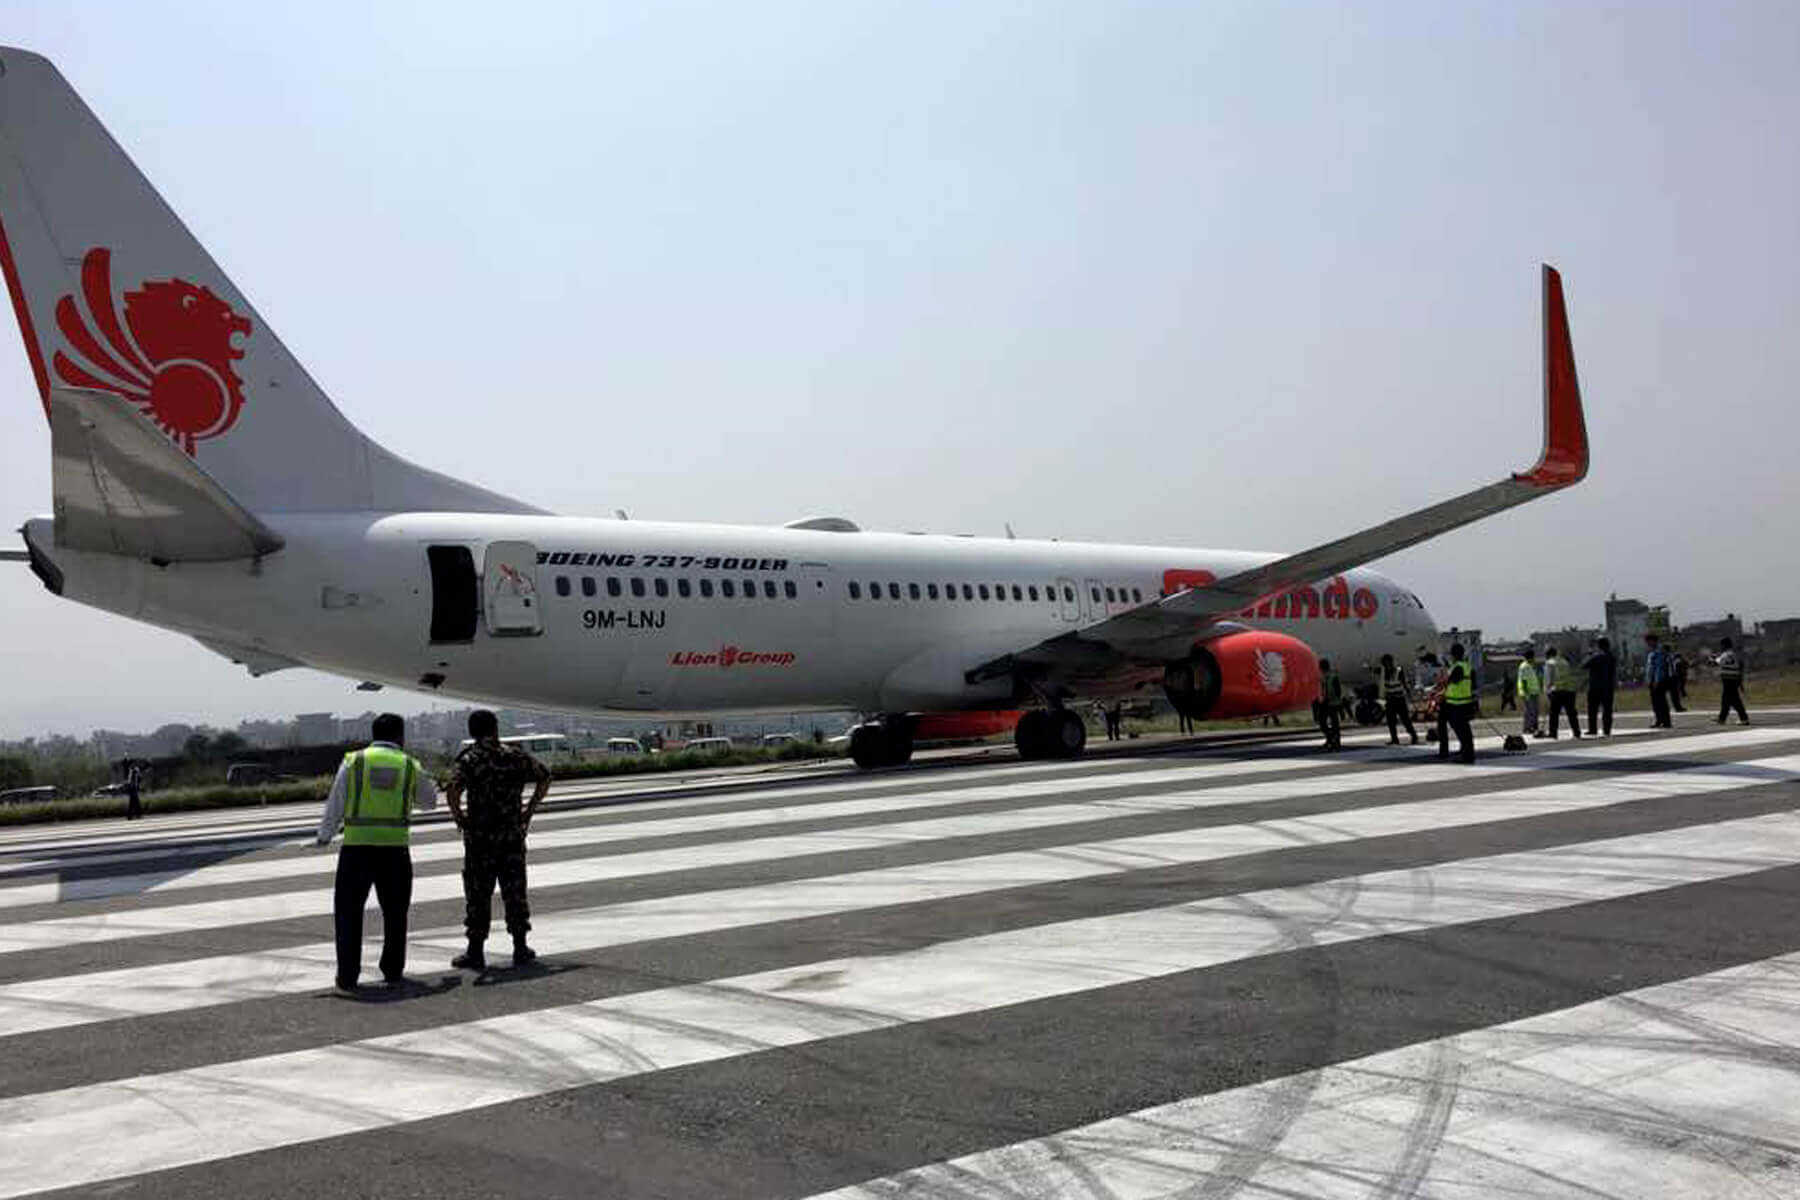 Malindo Air Boeing 737-900 that suffered a runway excursion in Kathmandu Thursday night being towed to the hangar area on Friday.